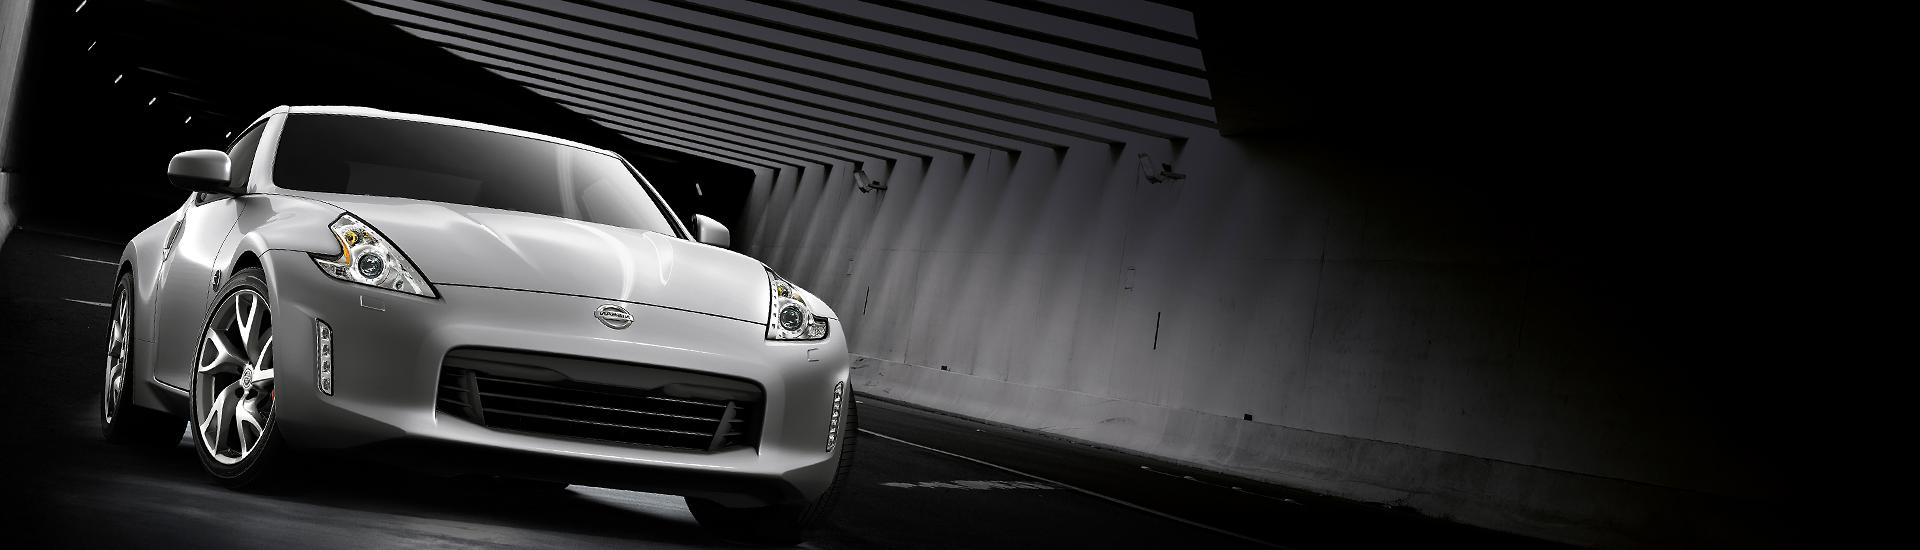 New Nissan 370z Coupe Cars For Sale Carsales Com Au